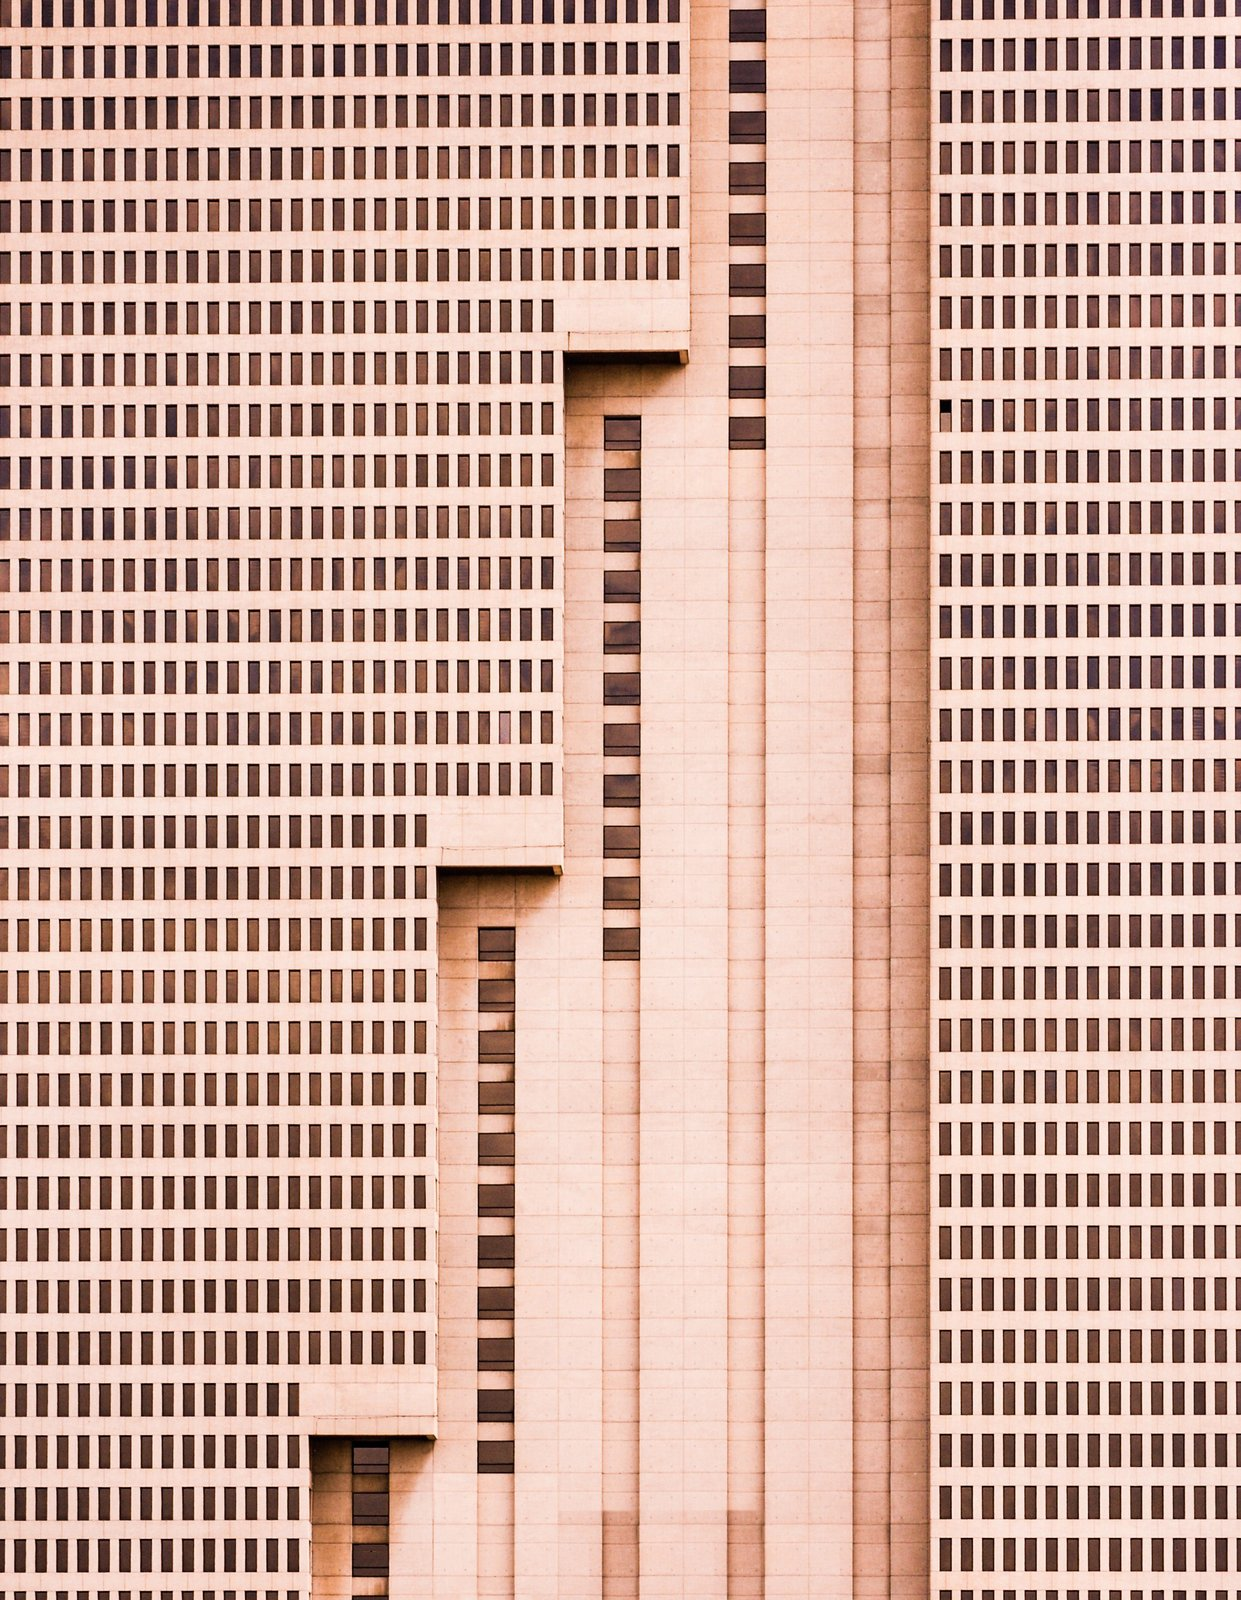 """Stairs, 2014. """"The tallest building in Fort Worth, Texas, this simple brutalist architectural design is a unique addition to the vibrant and growing downtown landscape, with a strong, repetitive pattern of windows being interrupted by meticulous, powerful vertical lines,"""" says Olic.  Photo 5 of 16 in Nikola Olic's Dizzying Architectural Photography from Dizzying Architectural Photography"""